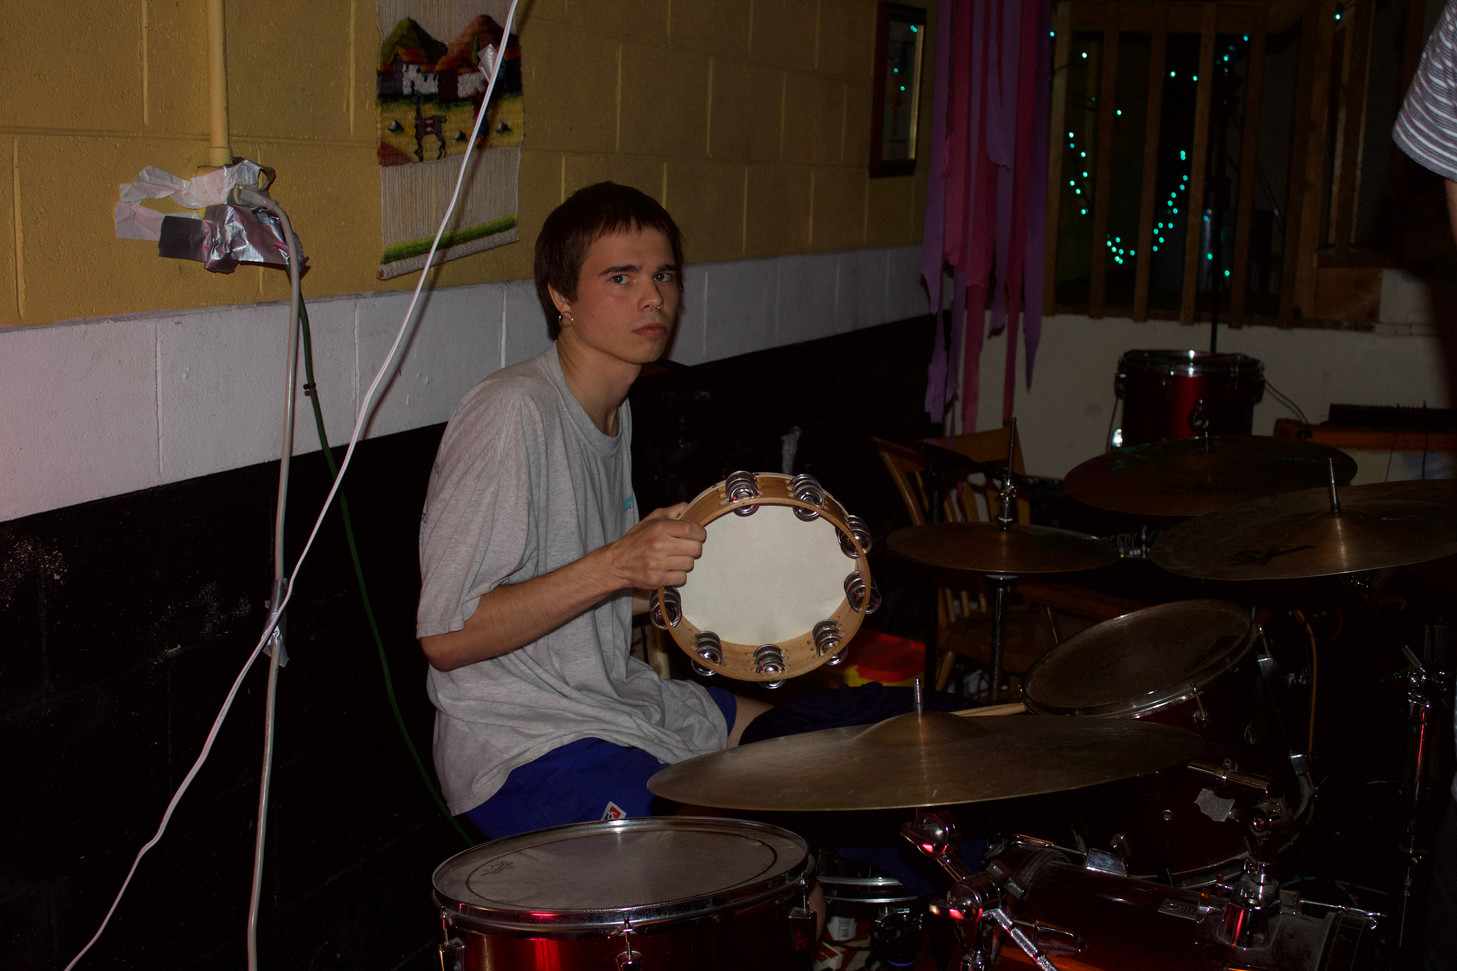 Dylan Taylor, one of the venue's owners, fills in on drums for Self-Help.